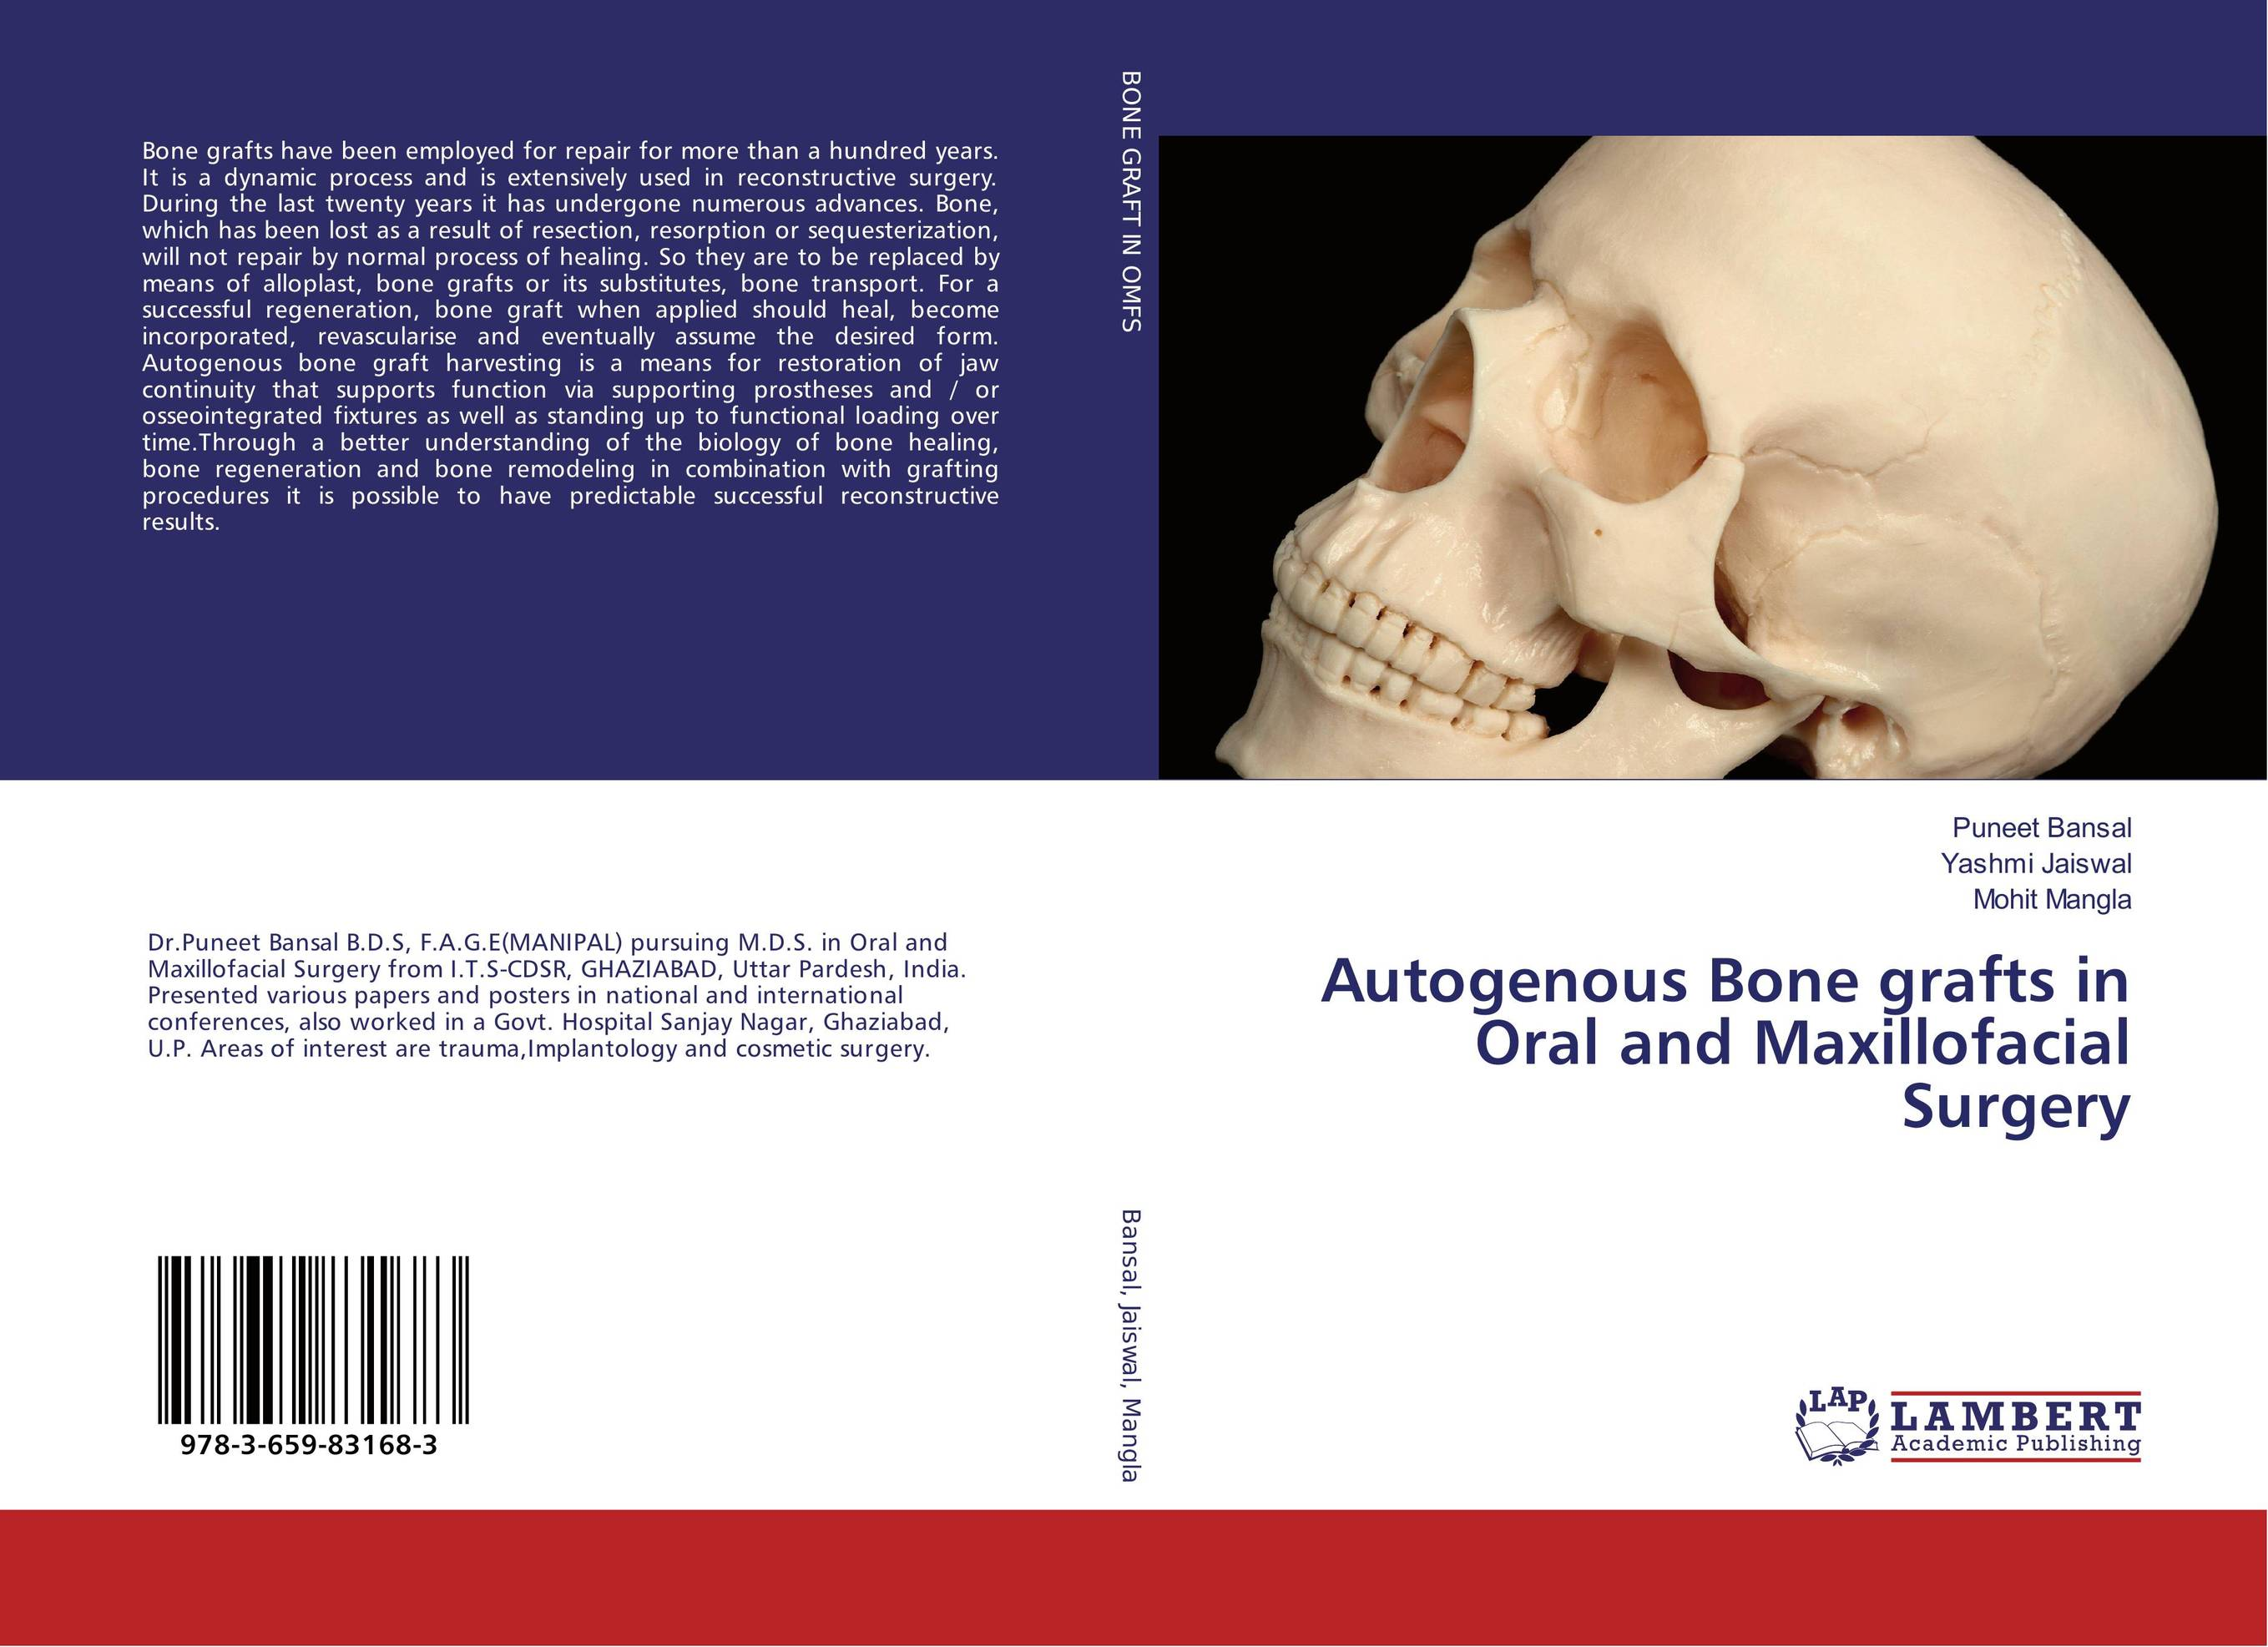 Autogenous Bone grafts in Oral and Maxillofacial Surgery uj moore principles of oral and maxillofacial surgery 6e